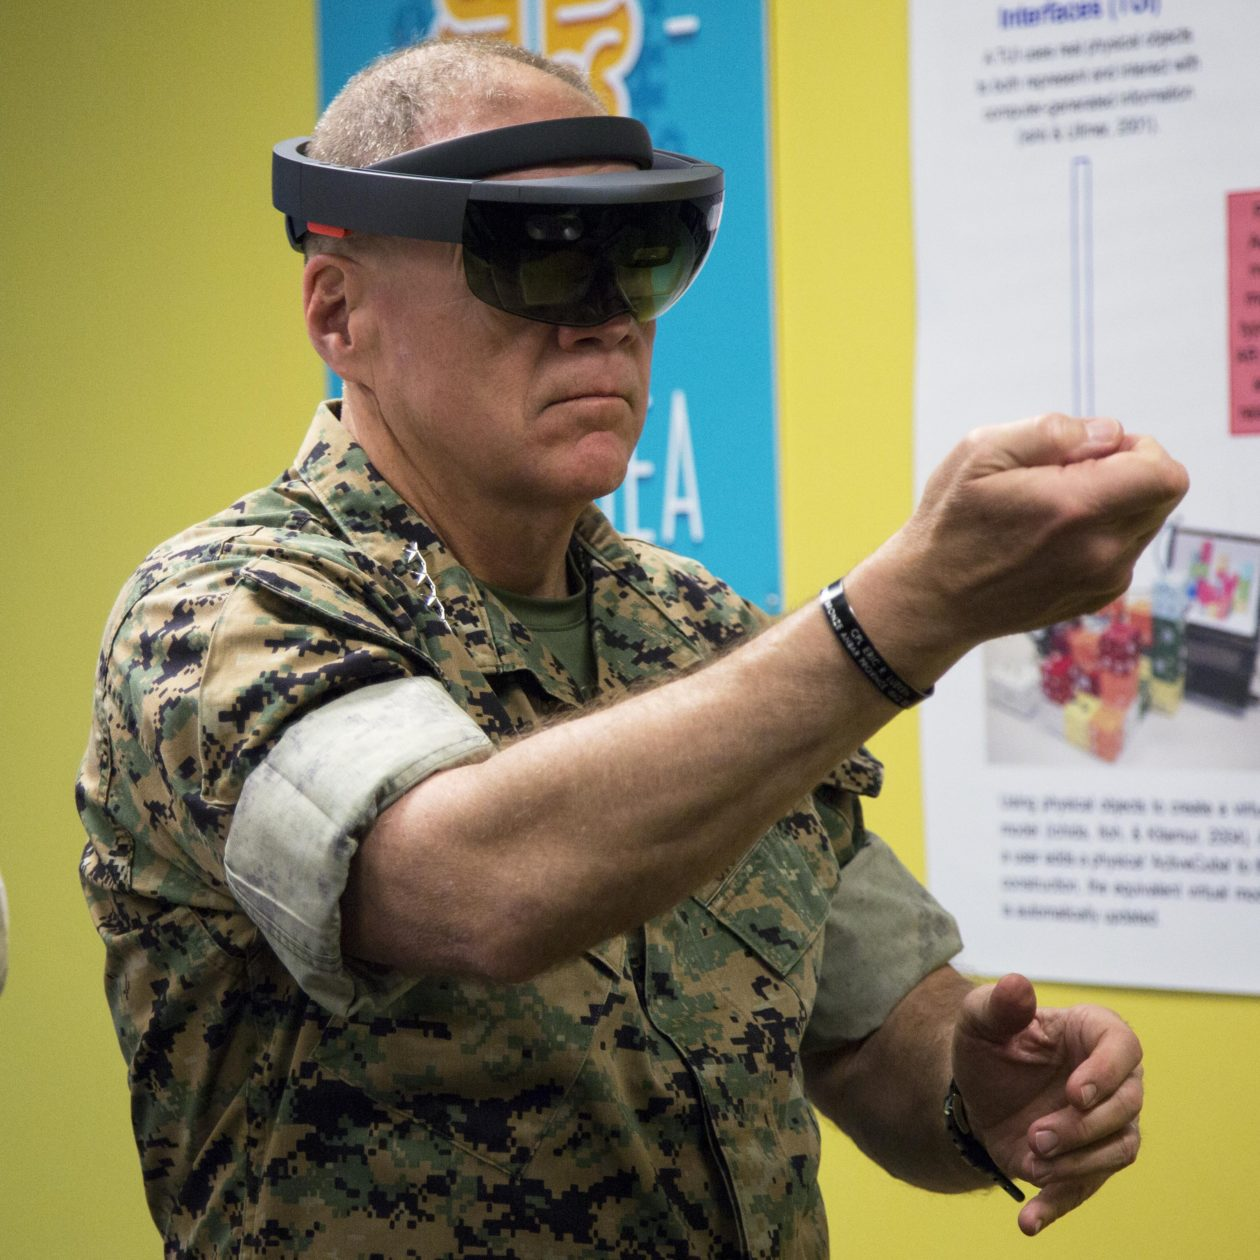 Army Computer Engineer Cover Letter Employees Call On Microsoft To Drop Hololens Us Army Contract We